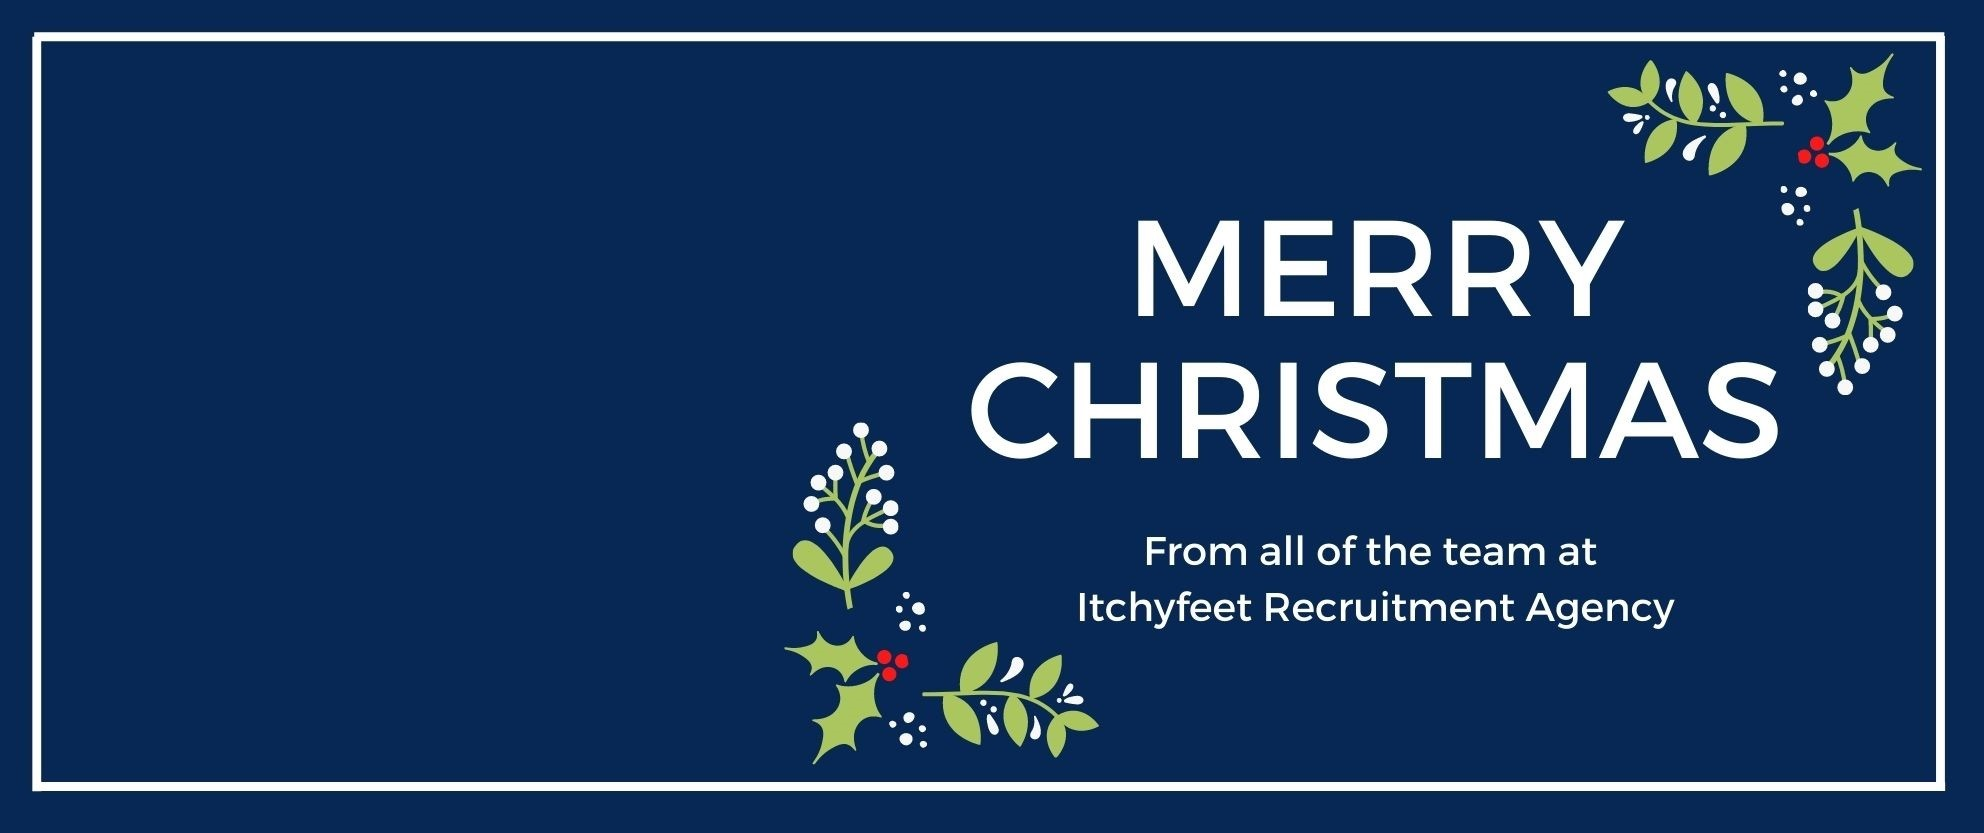 Website banner - Merry Christmas.jpg